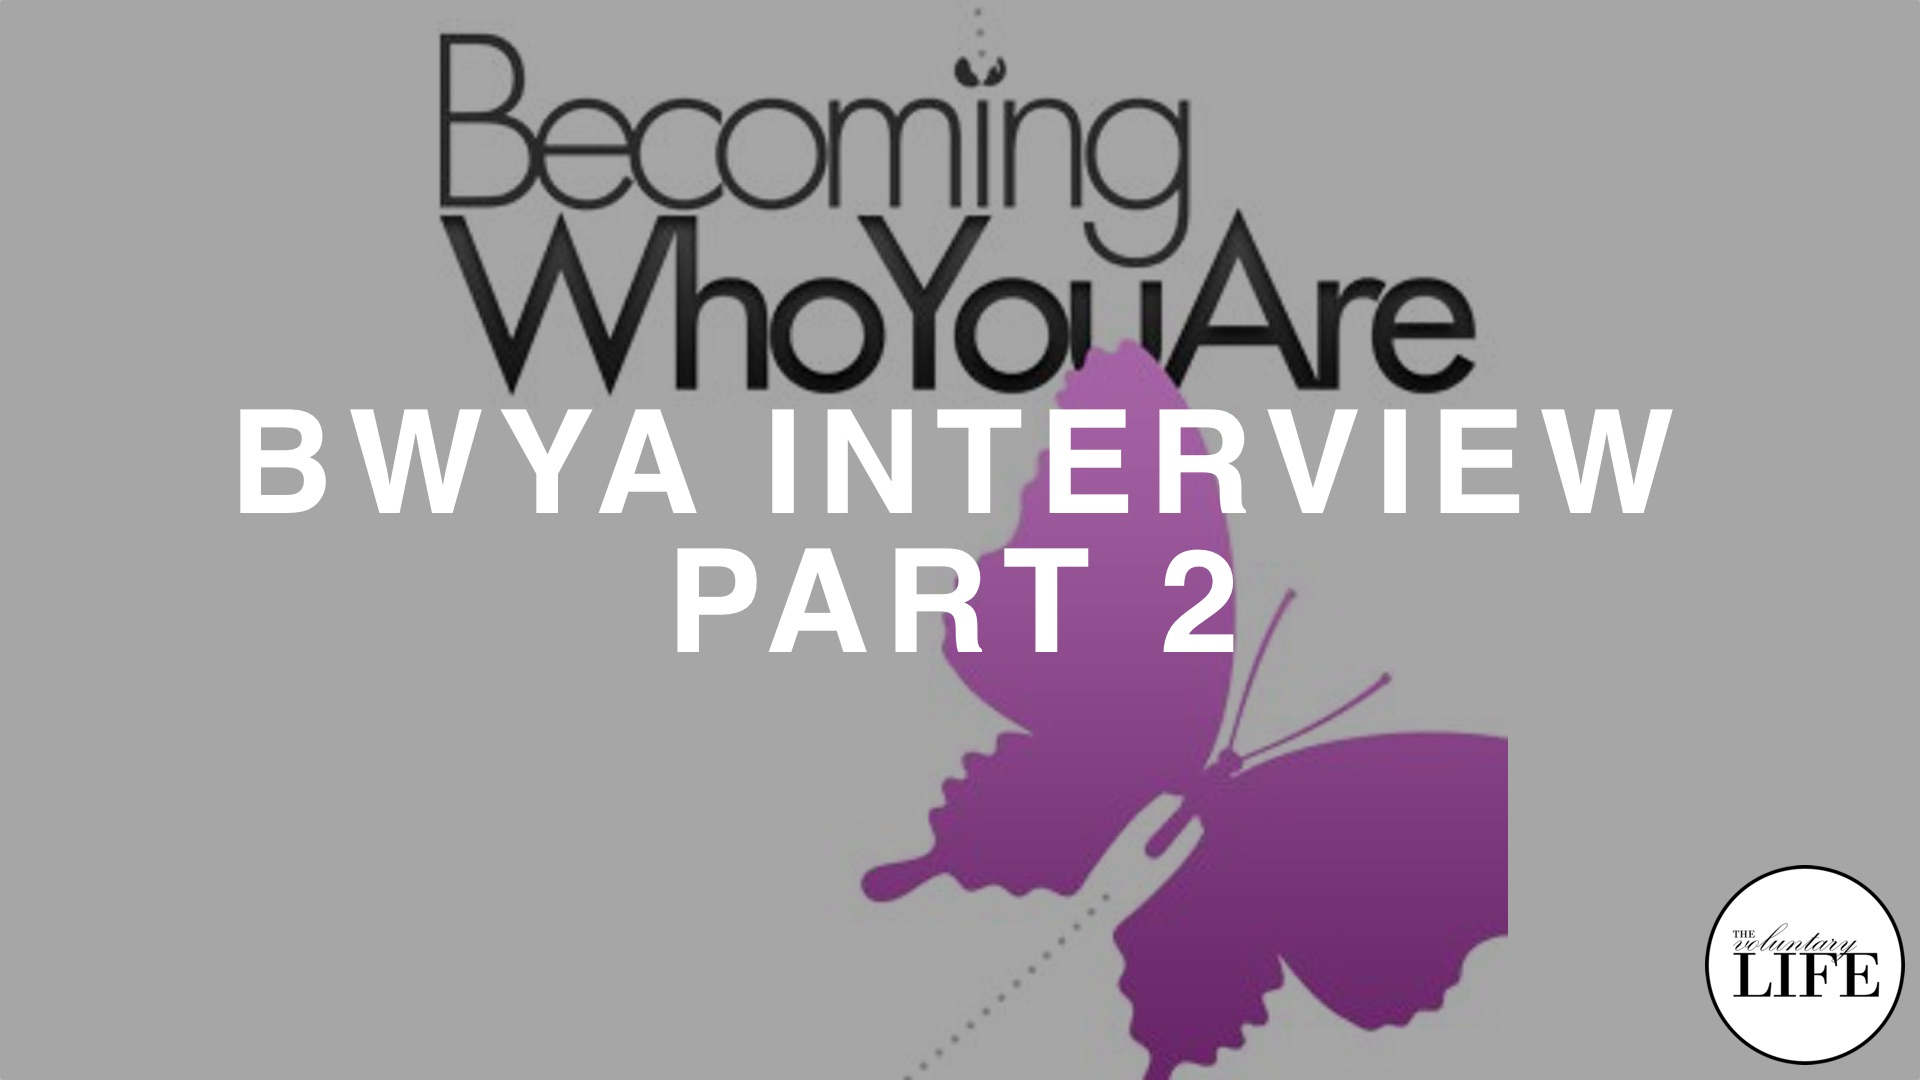 70 Becoming Who You Are Interview Part 2